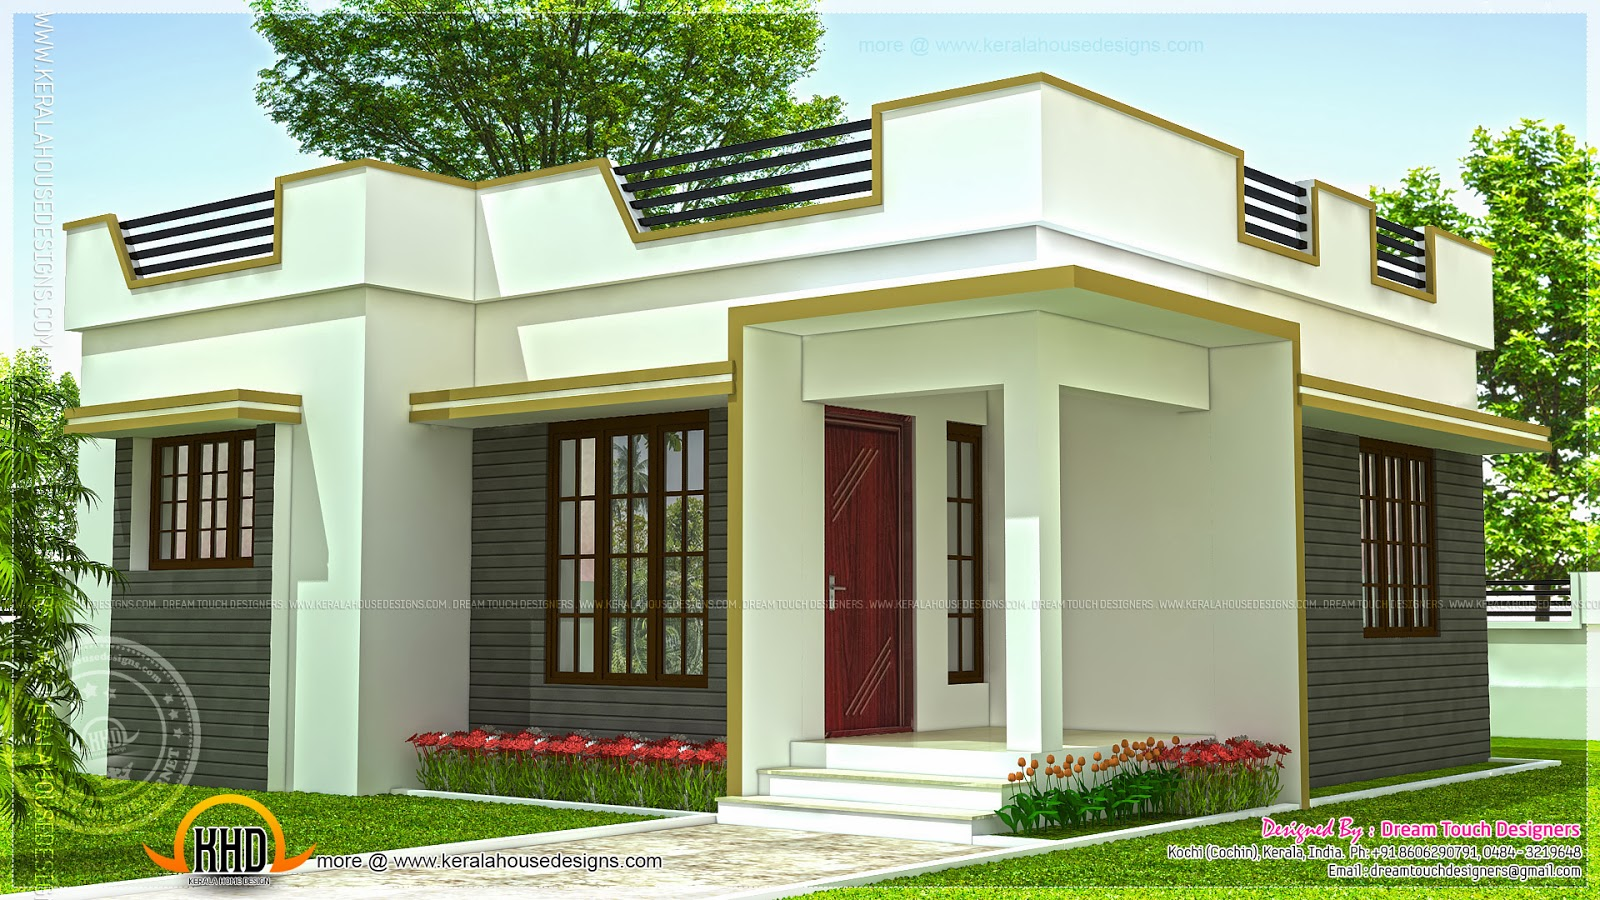 35 small and simple but beautiful house with roof deck for Small house design